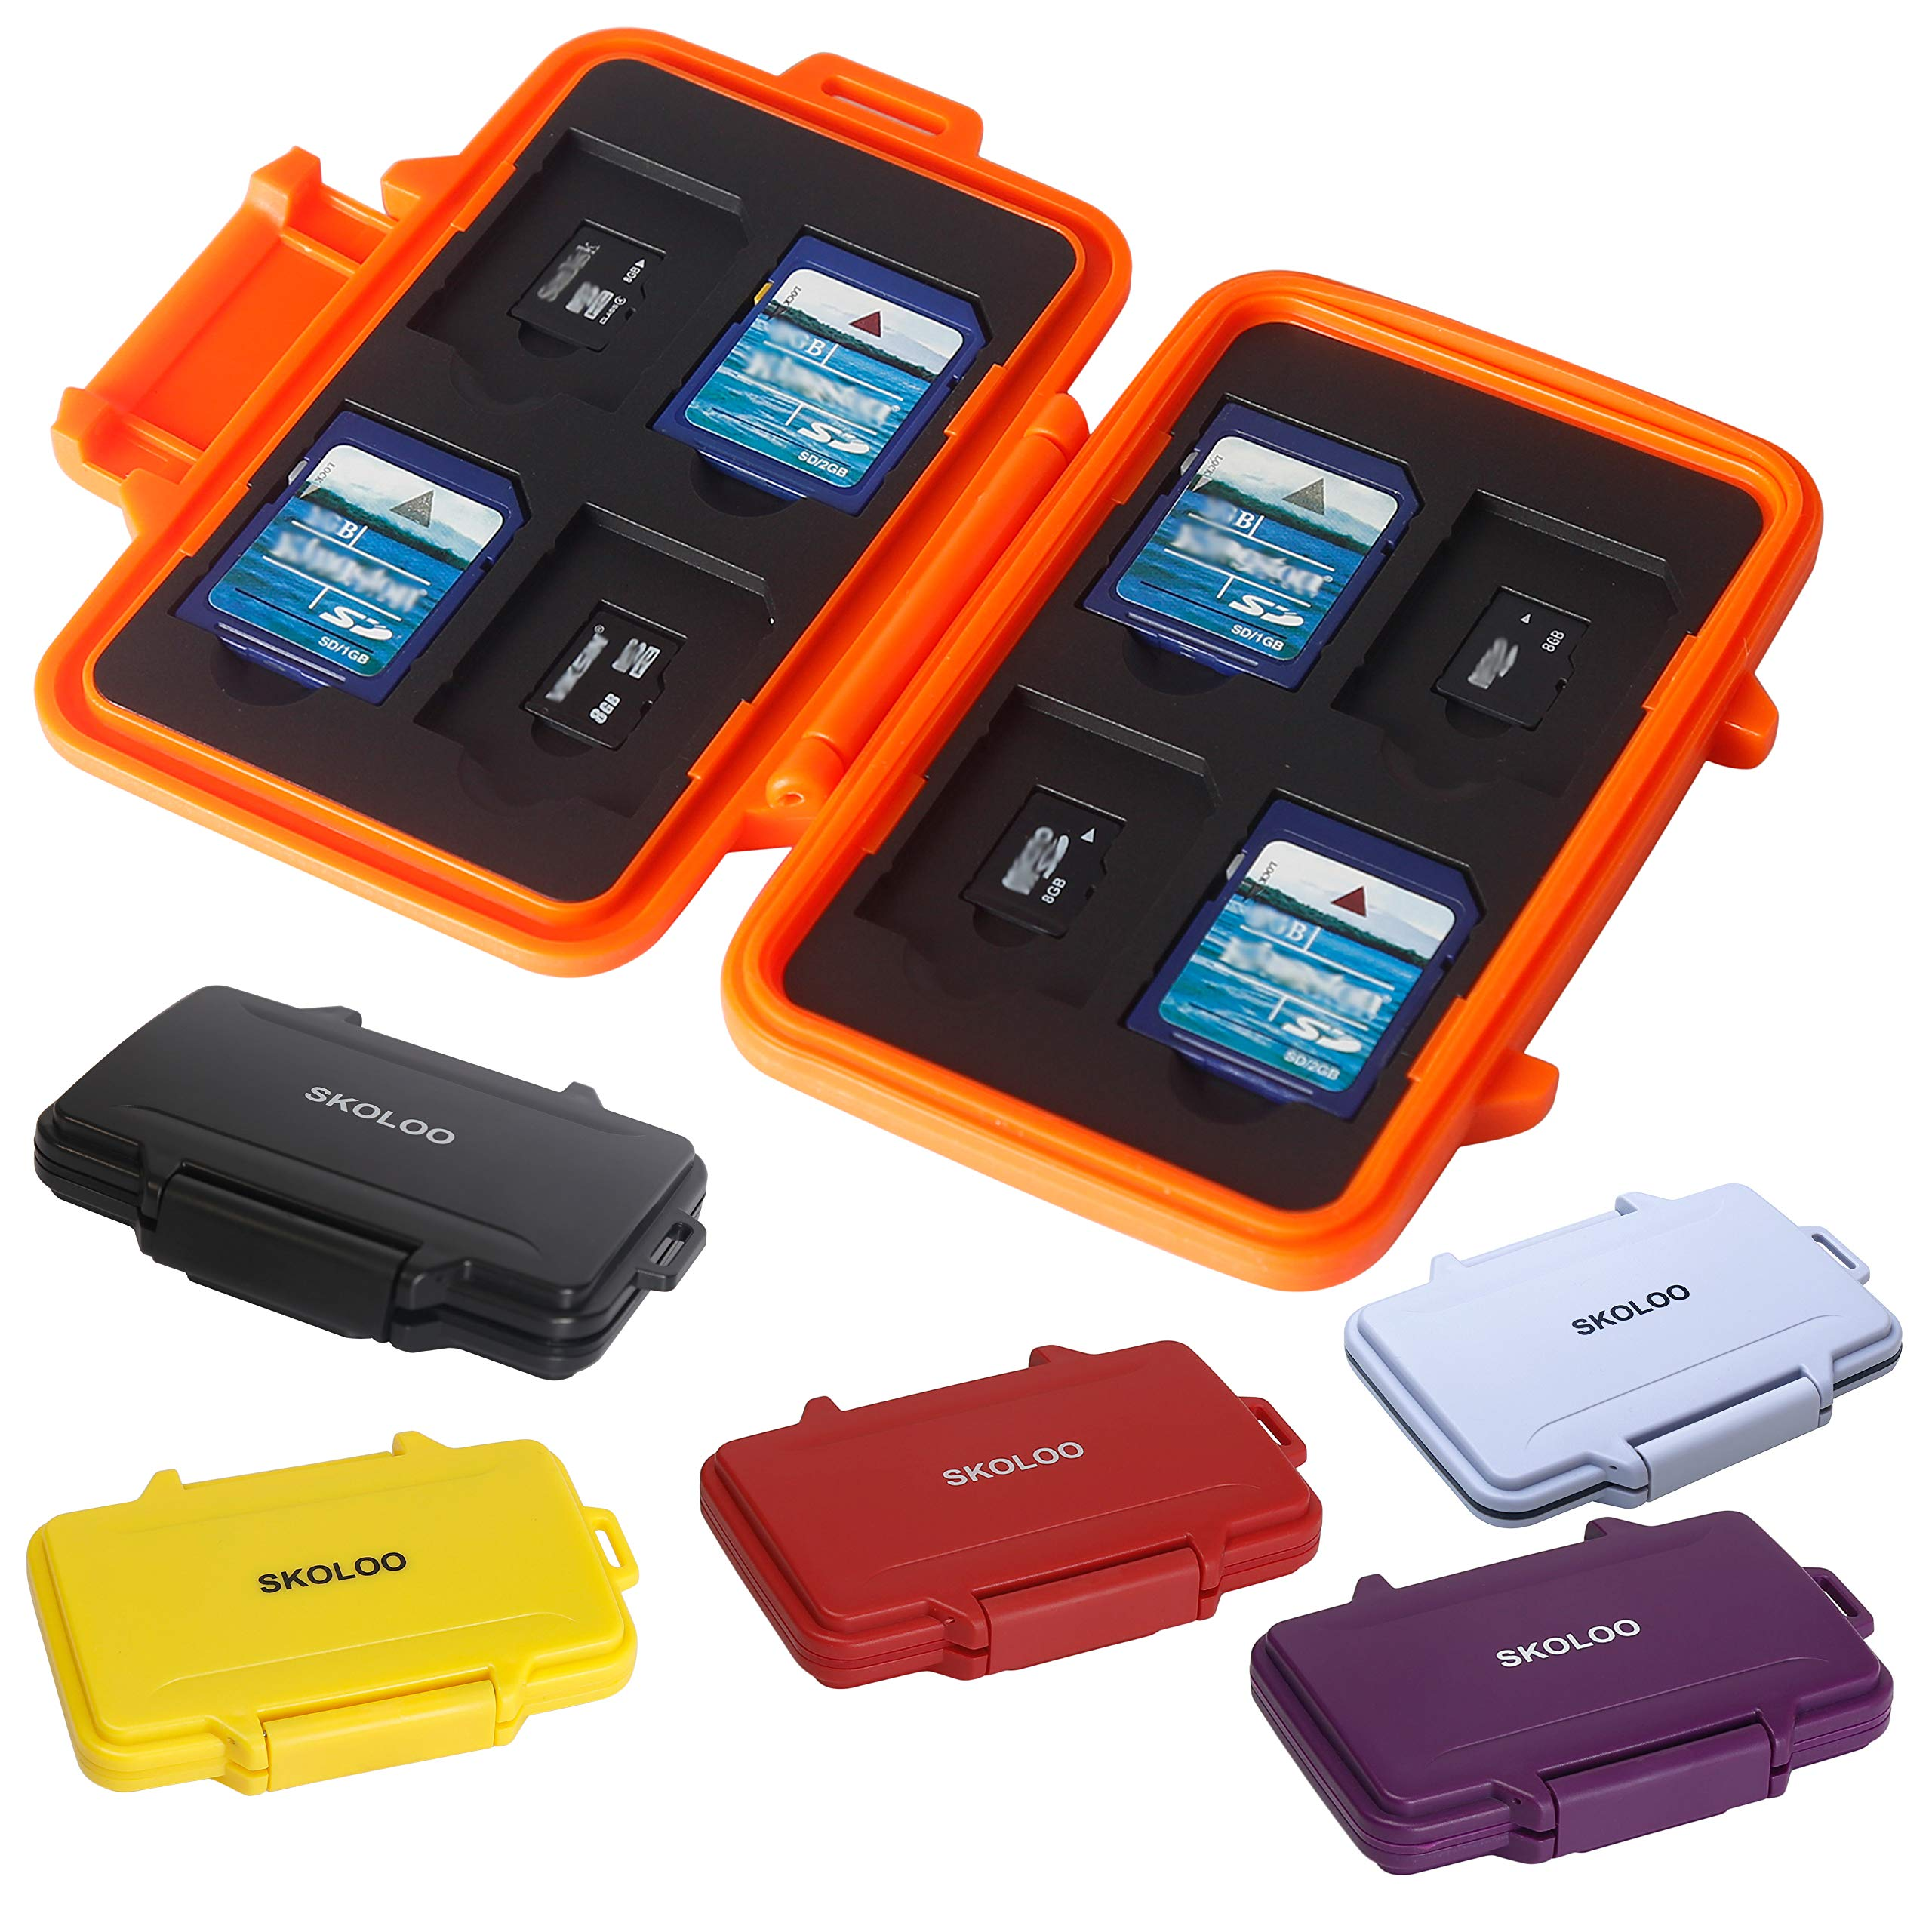 SD Card Holder Case Hunter, SKOLOO Weatherproof Micro SD Card Case Small Cute, SD Card Storage Container, Multi-Color